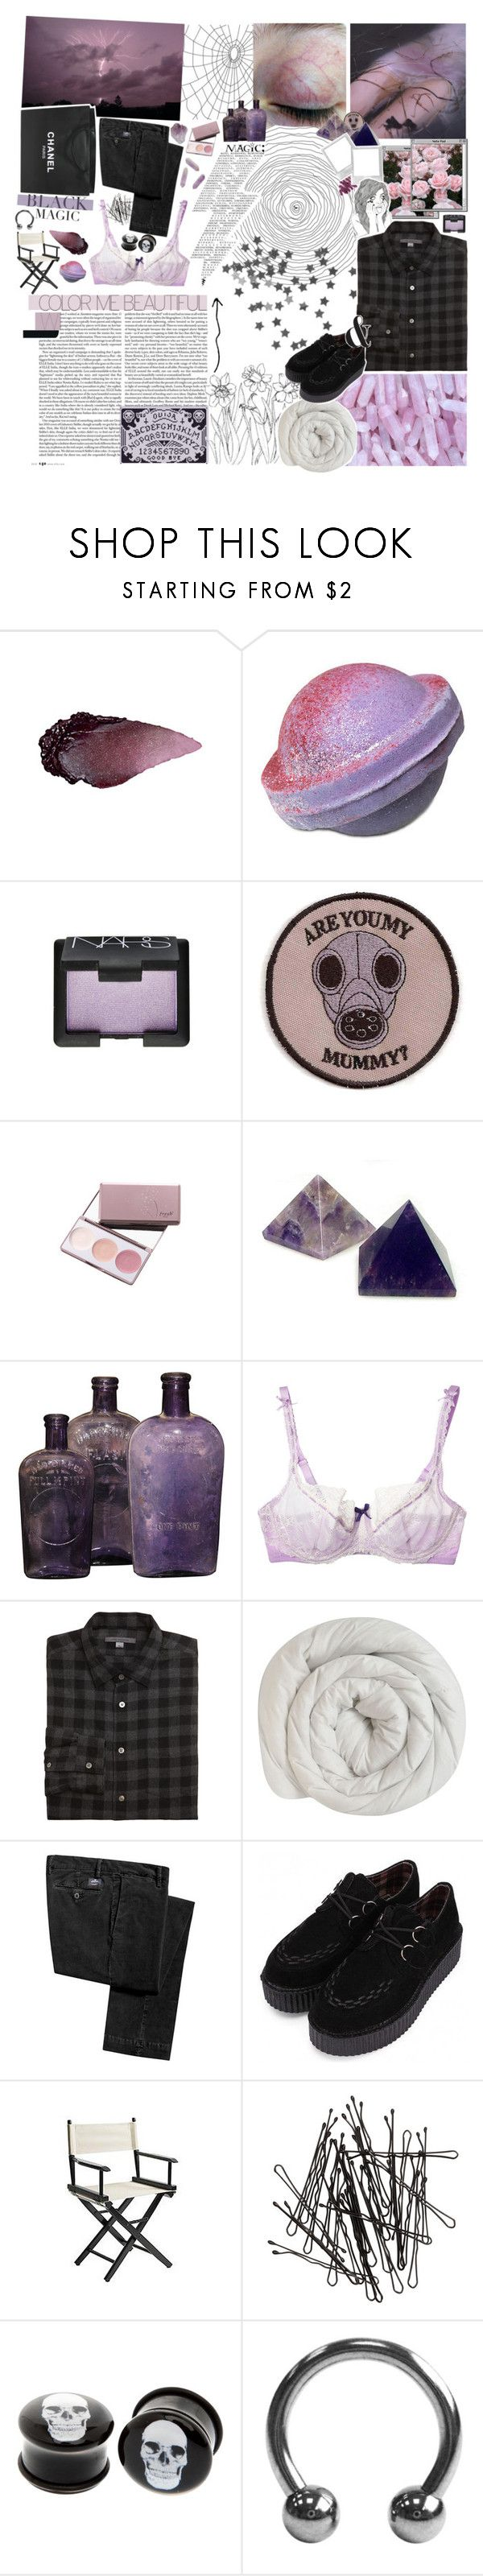 """""""Stop Putting Me Down"""" by amberishdead ❤ liked on Polyvore featuring Urban Decay, NARS Cosmetics, GAS Jeans, Elle Macpherson Intimates, MANGO, Chanel, John Varvatos, Pier 1 Imports, H&M and Hot Topic"""